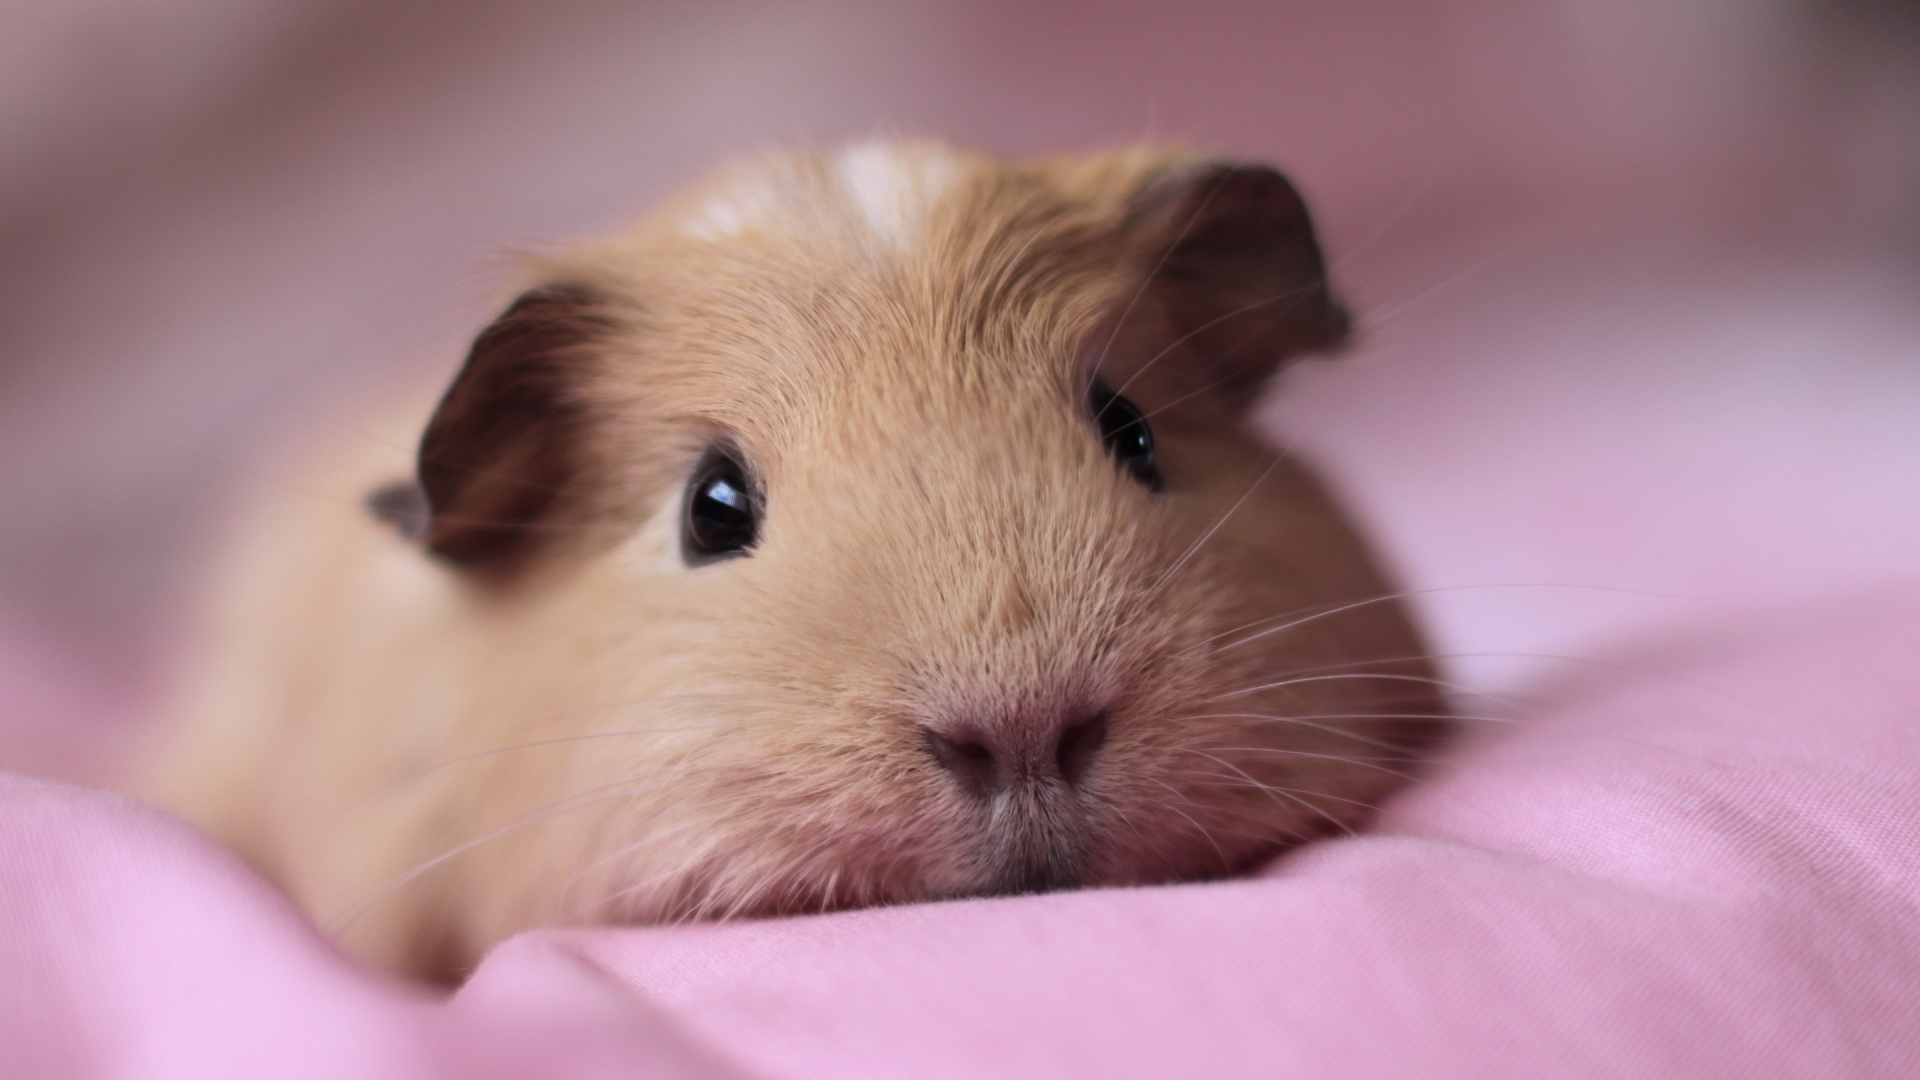 Guinea Pig Wallpaper 6754